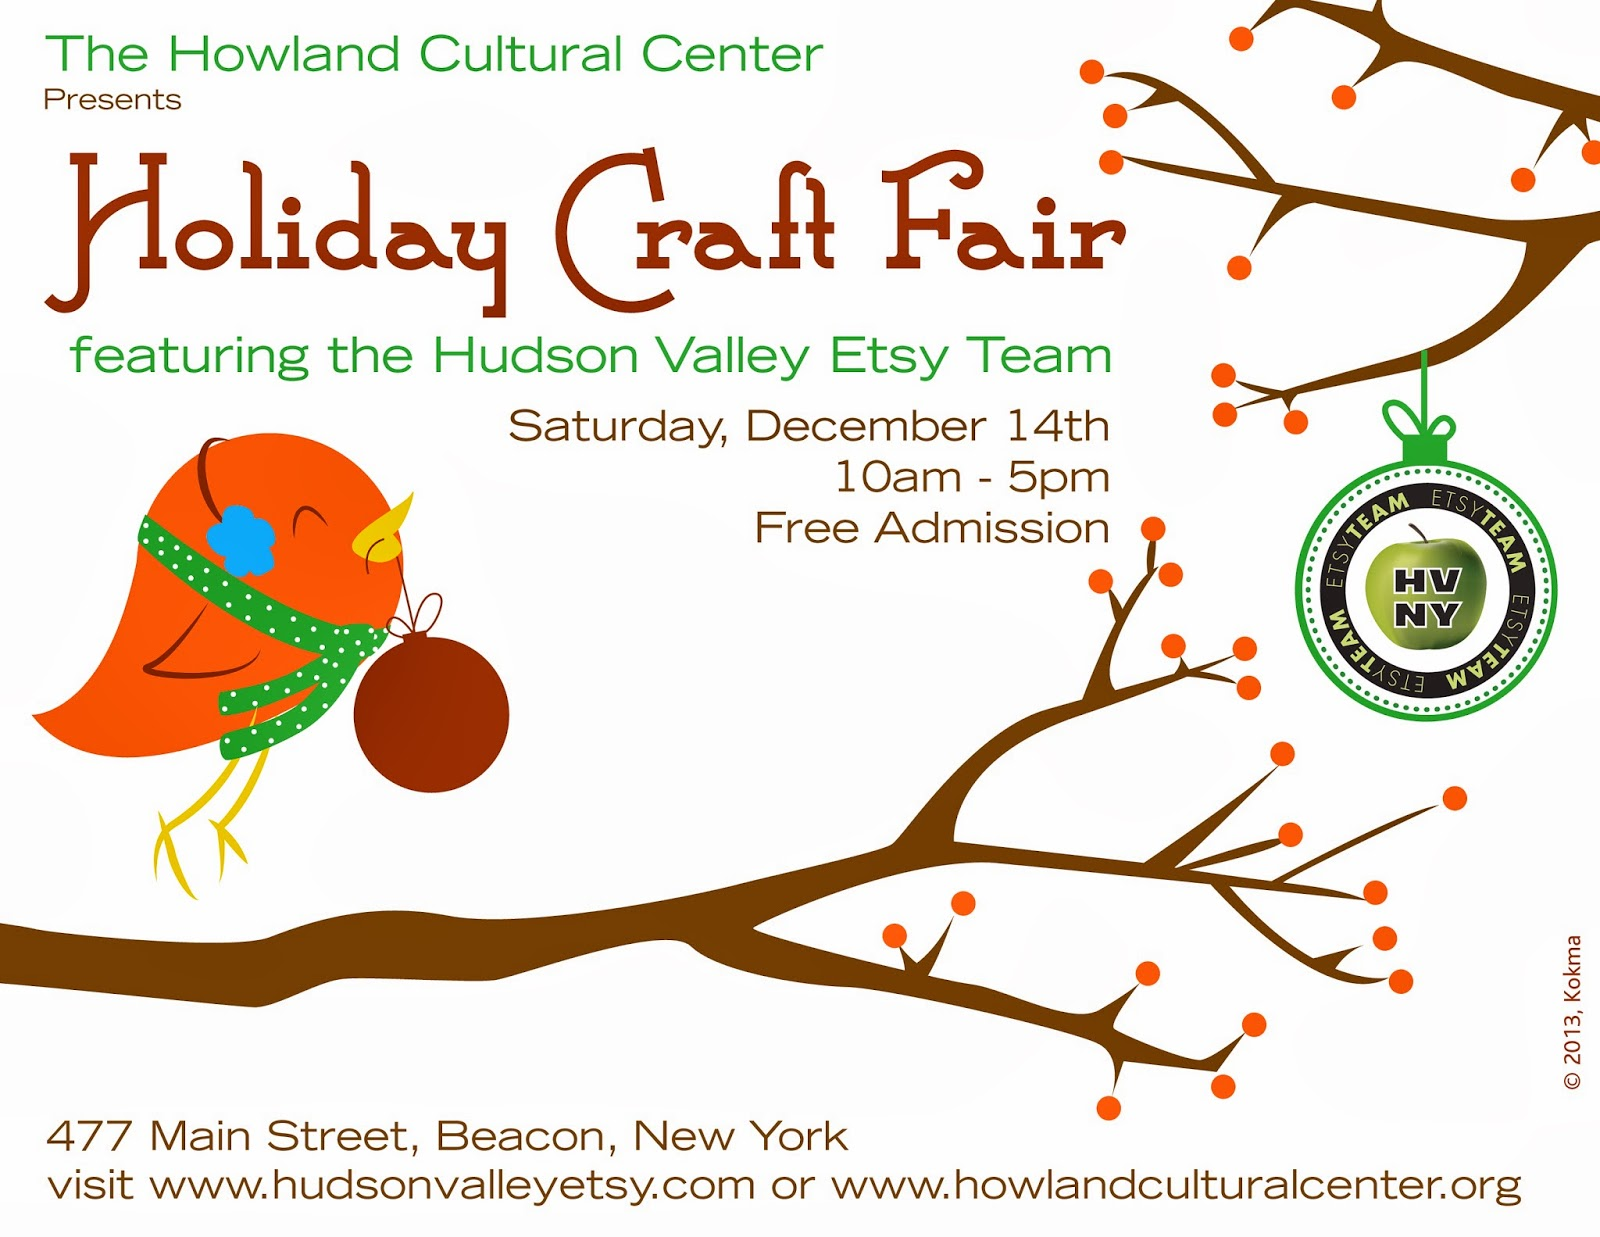 Holiday Craft Fair Clip Art Holiday craft fair - viewing